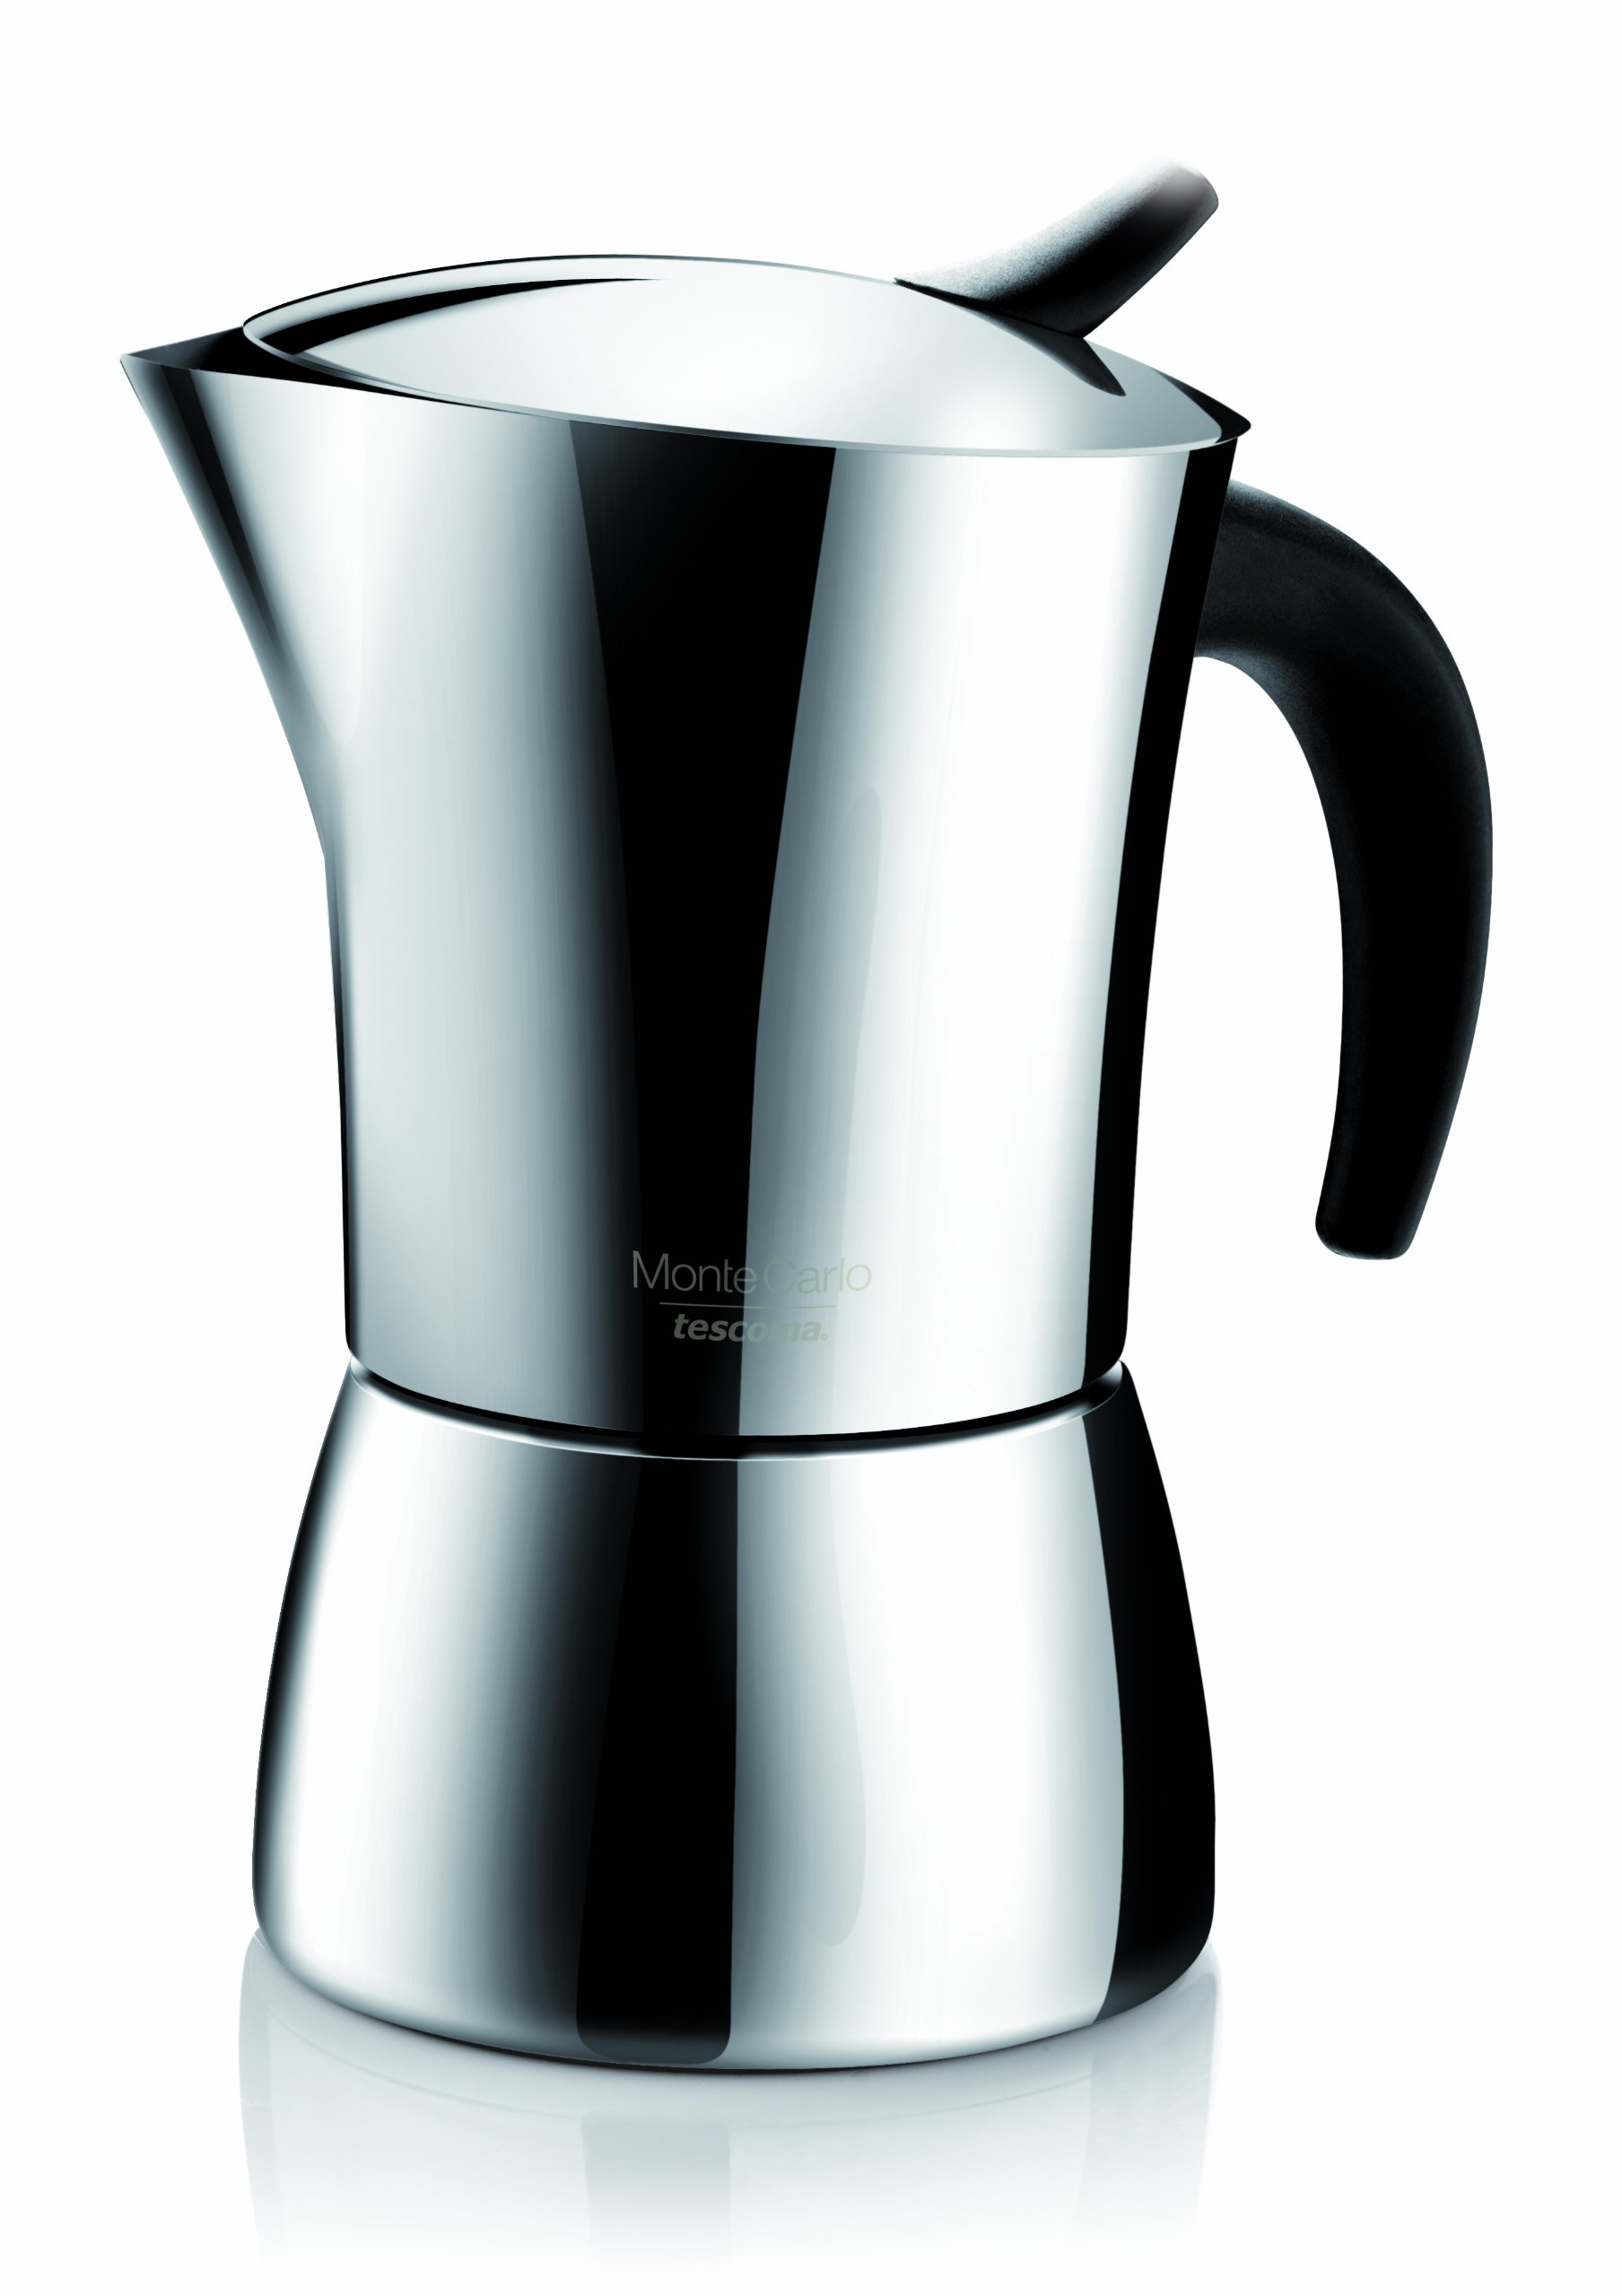 Tescoma:''Monte Carlo'' Stainless Steel Coffee Maker 4-Cups